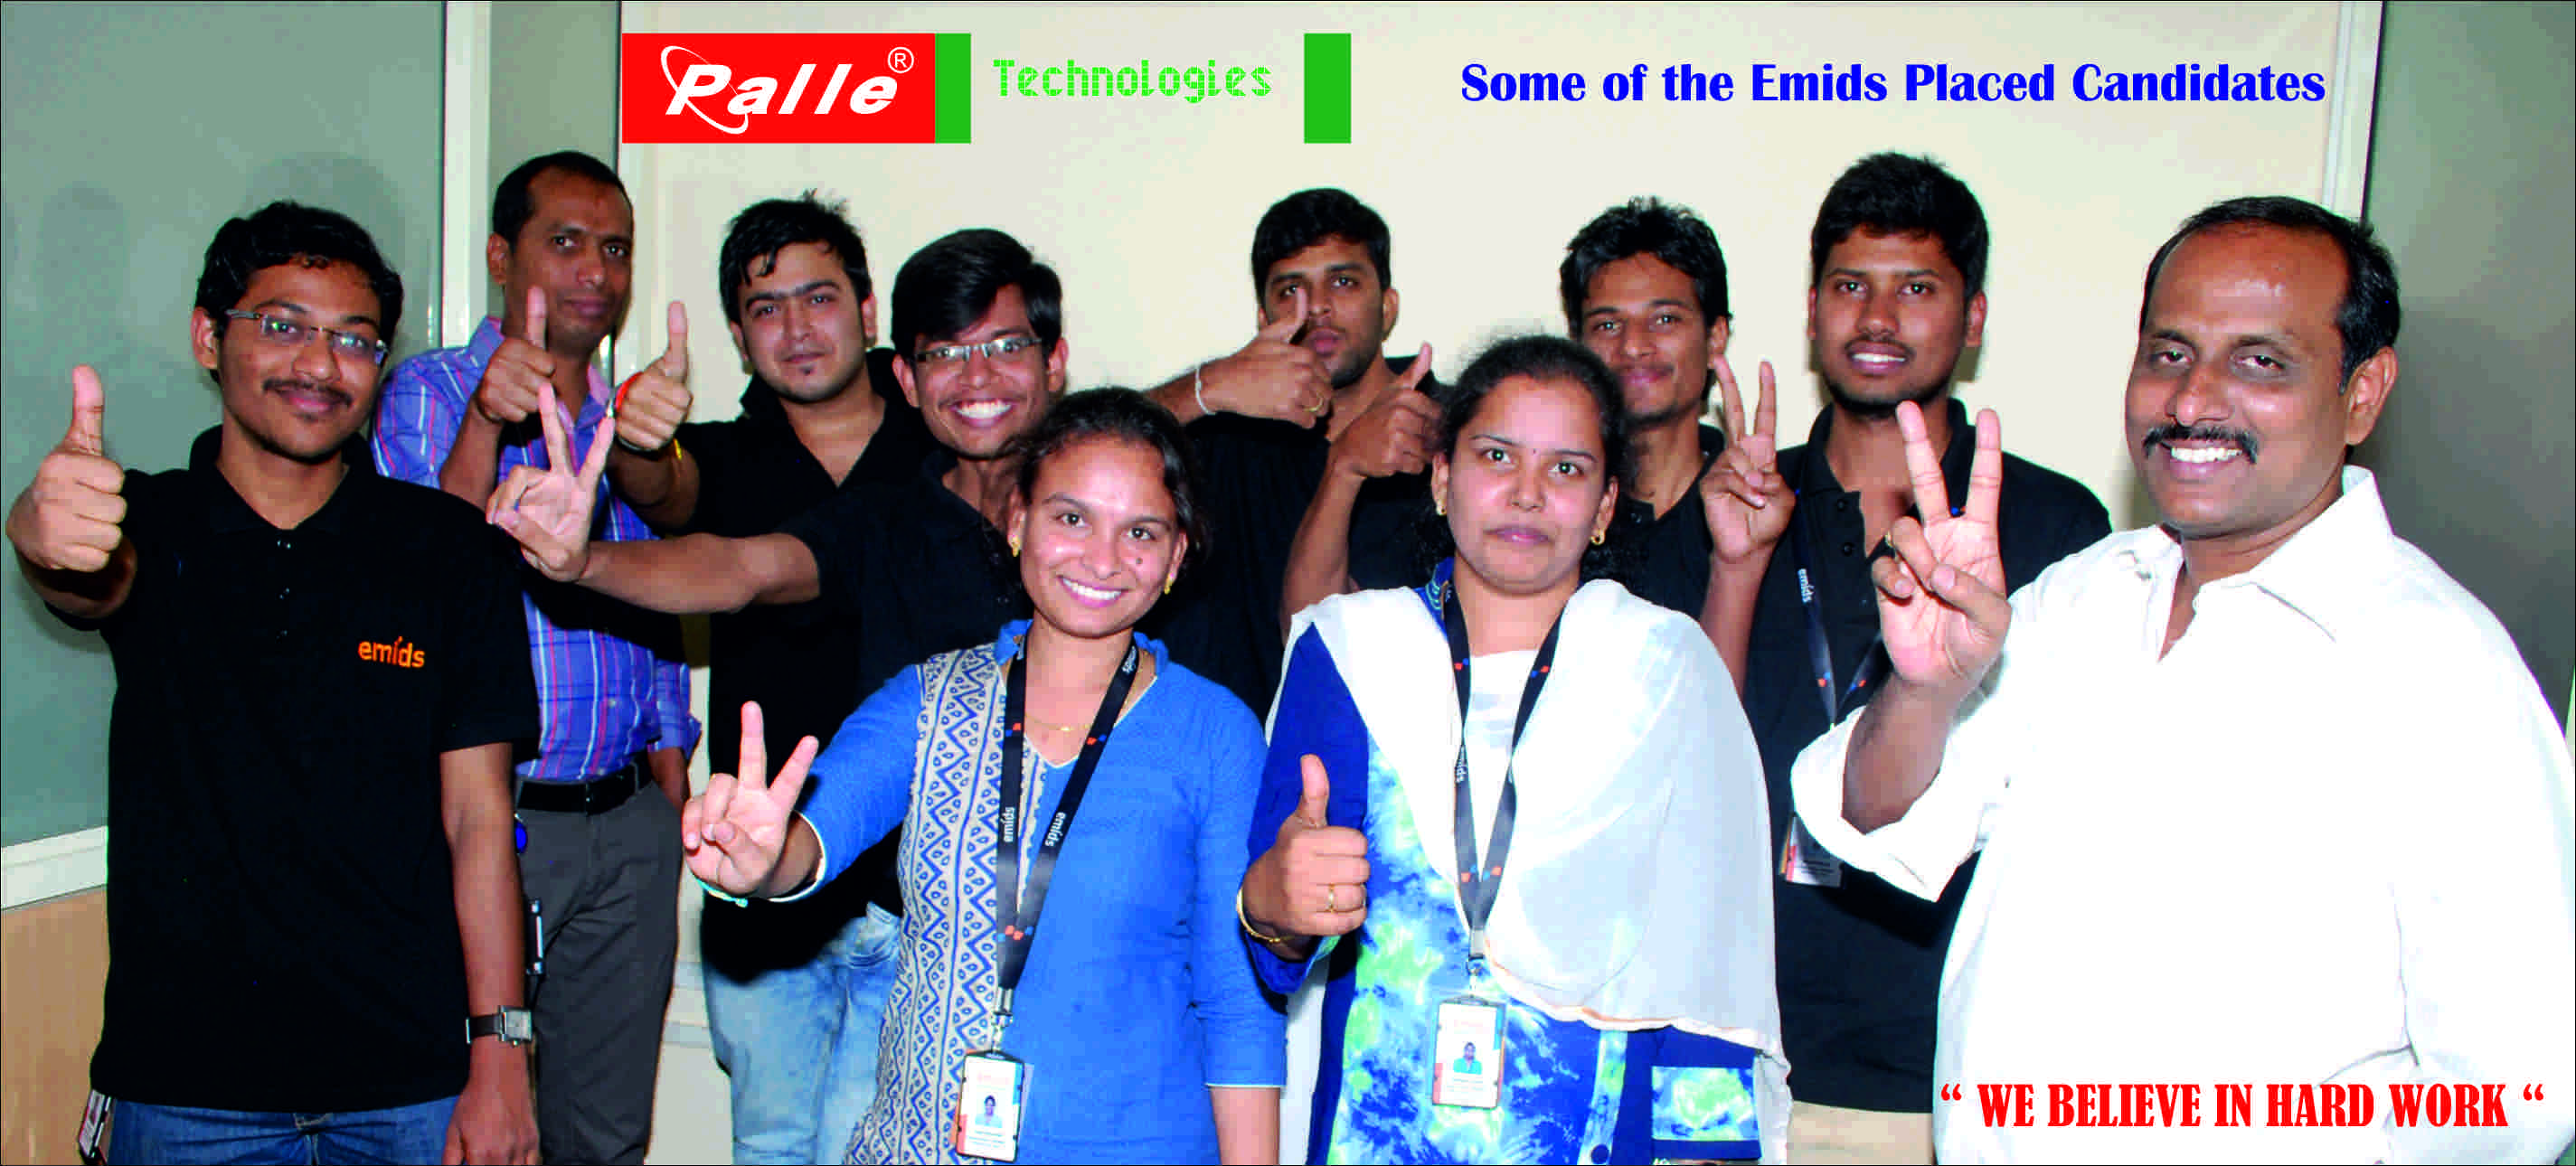 palle_placed_students